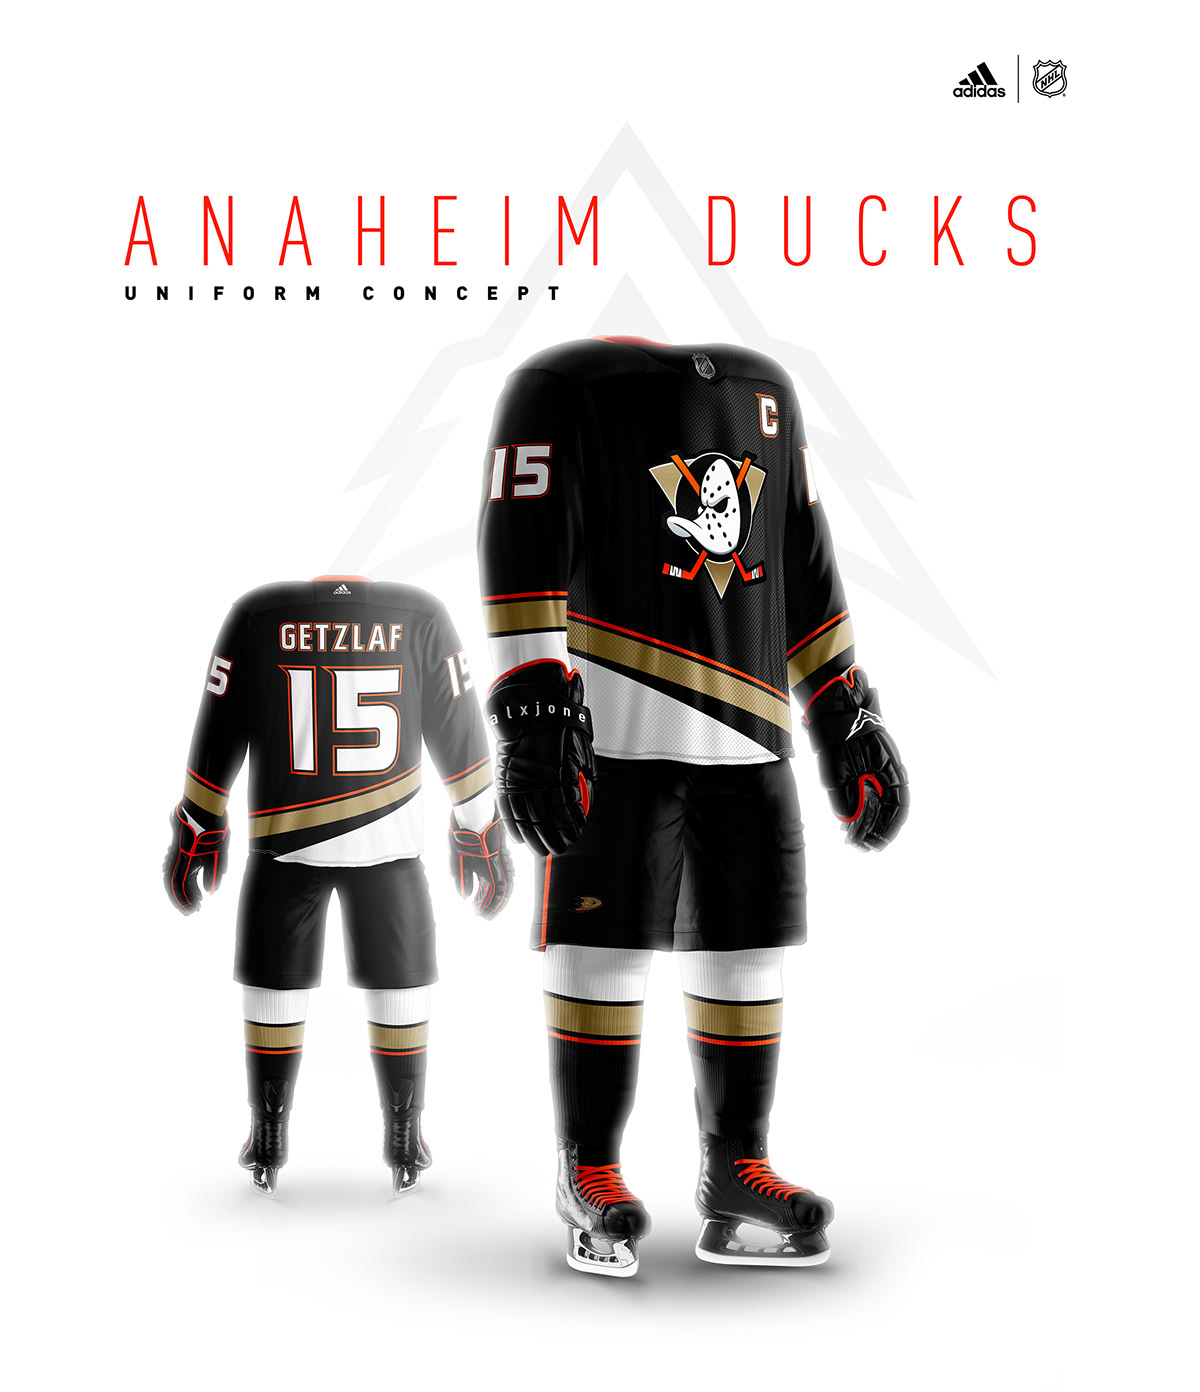 hockey jersey concepts